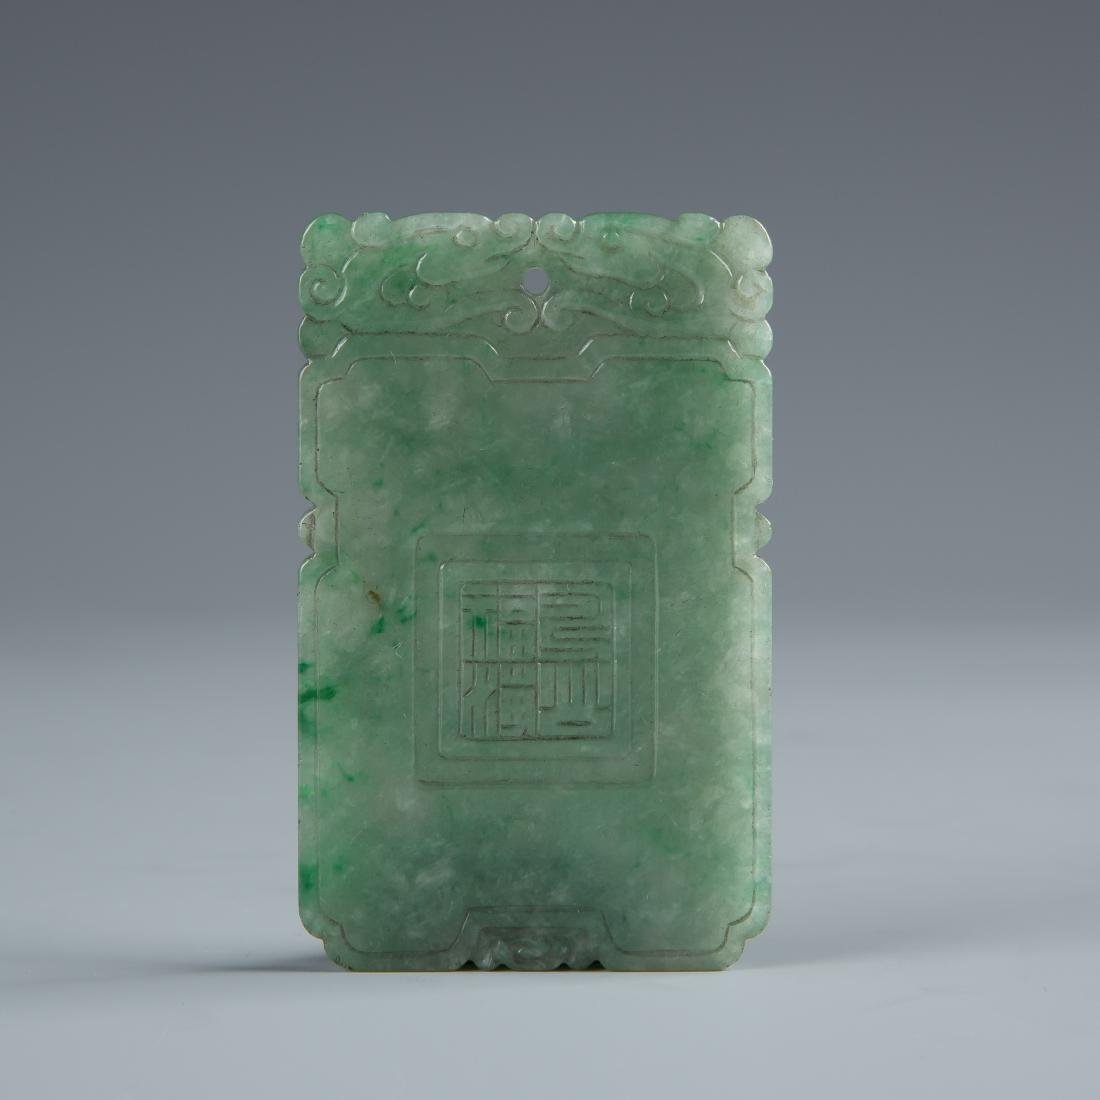 Carved Green Jade Pendant with Mark - 4